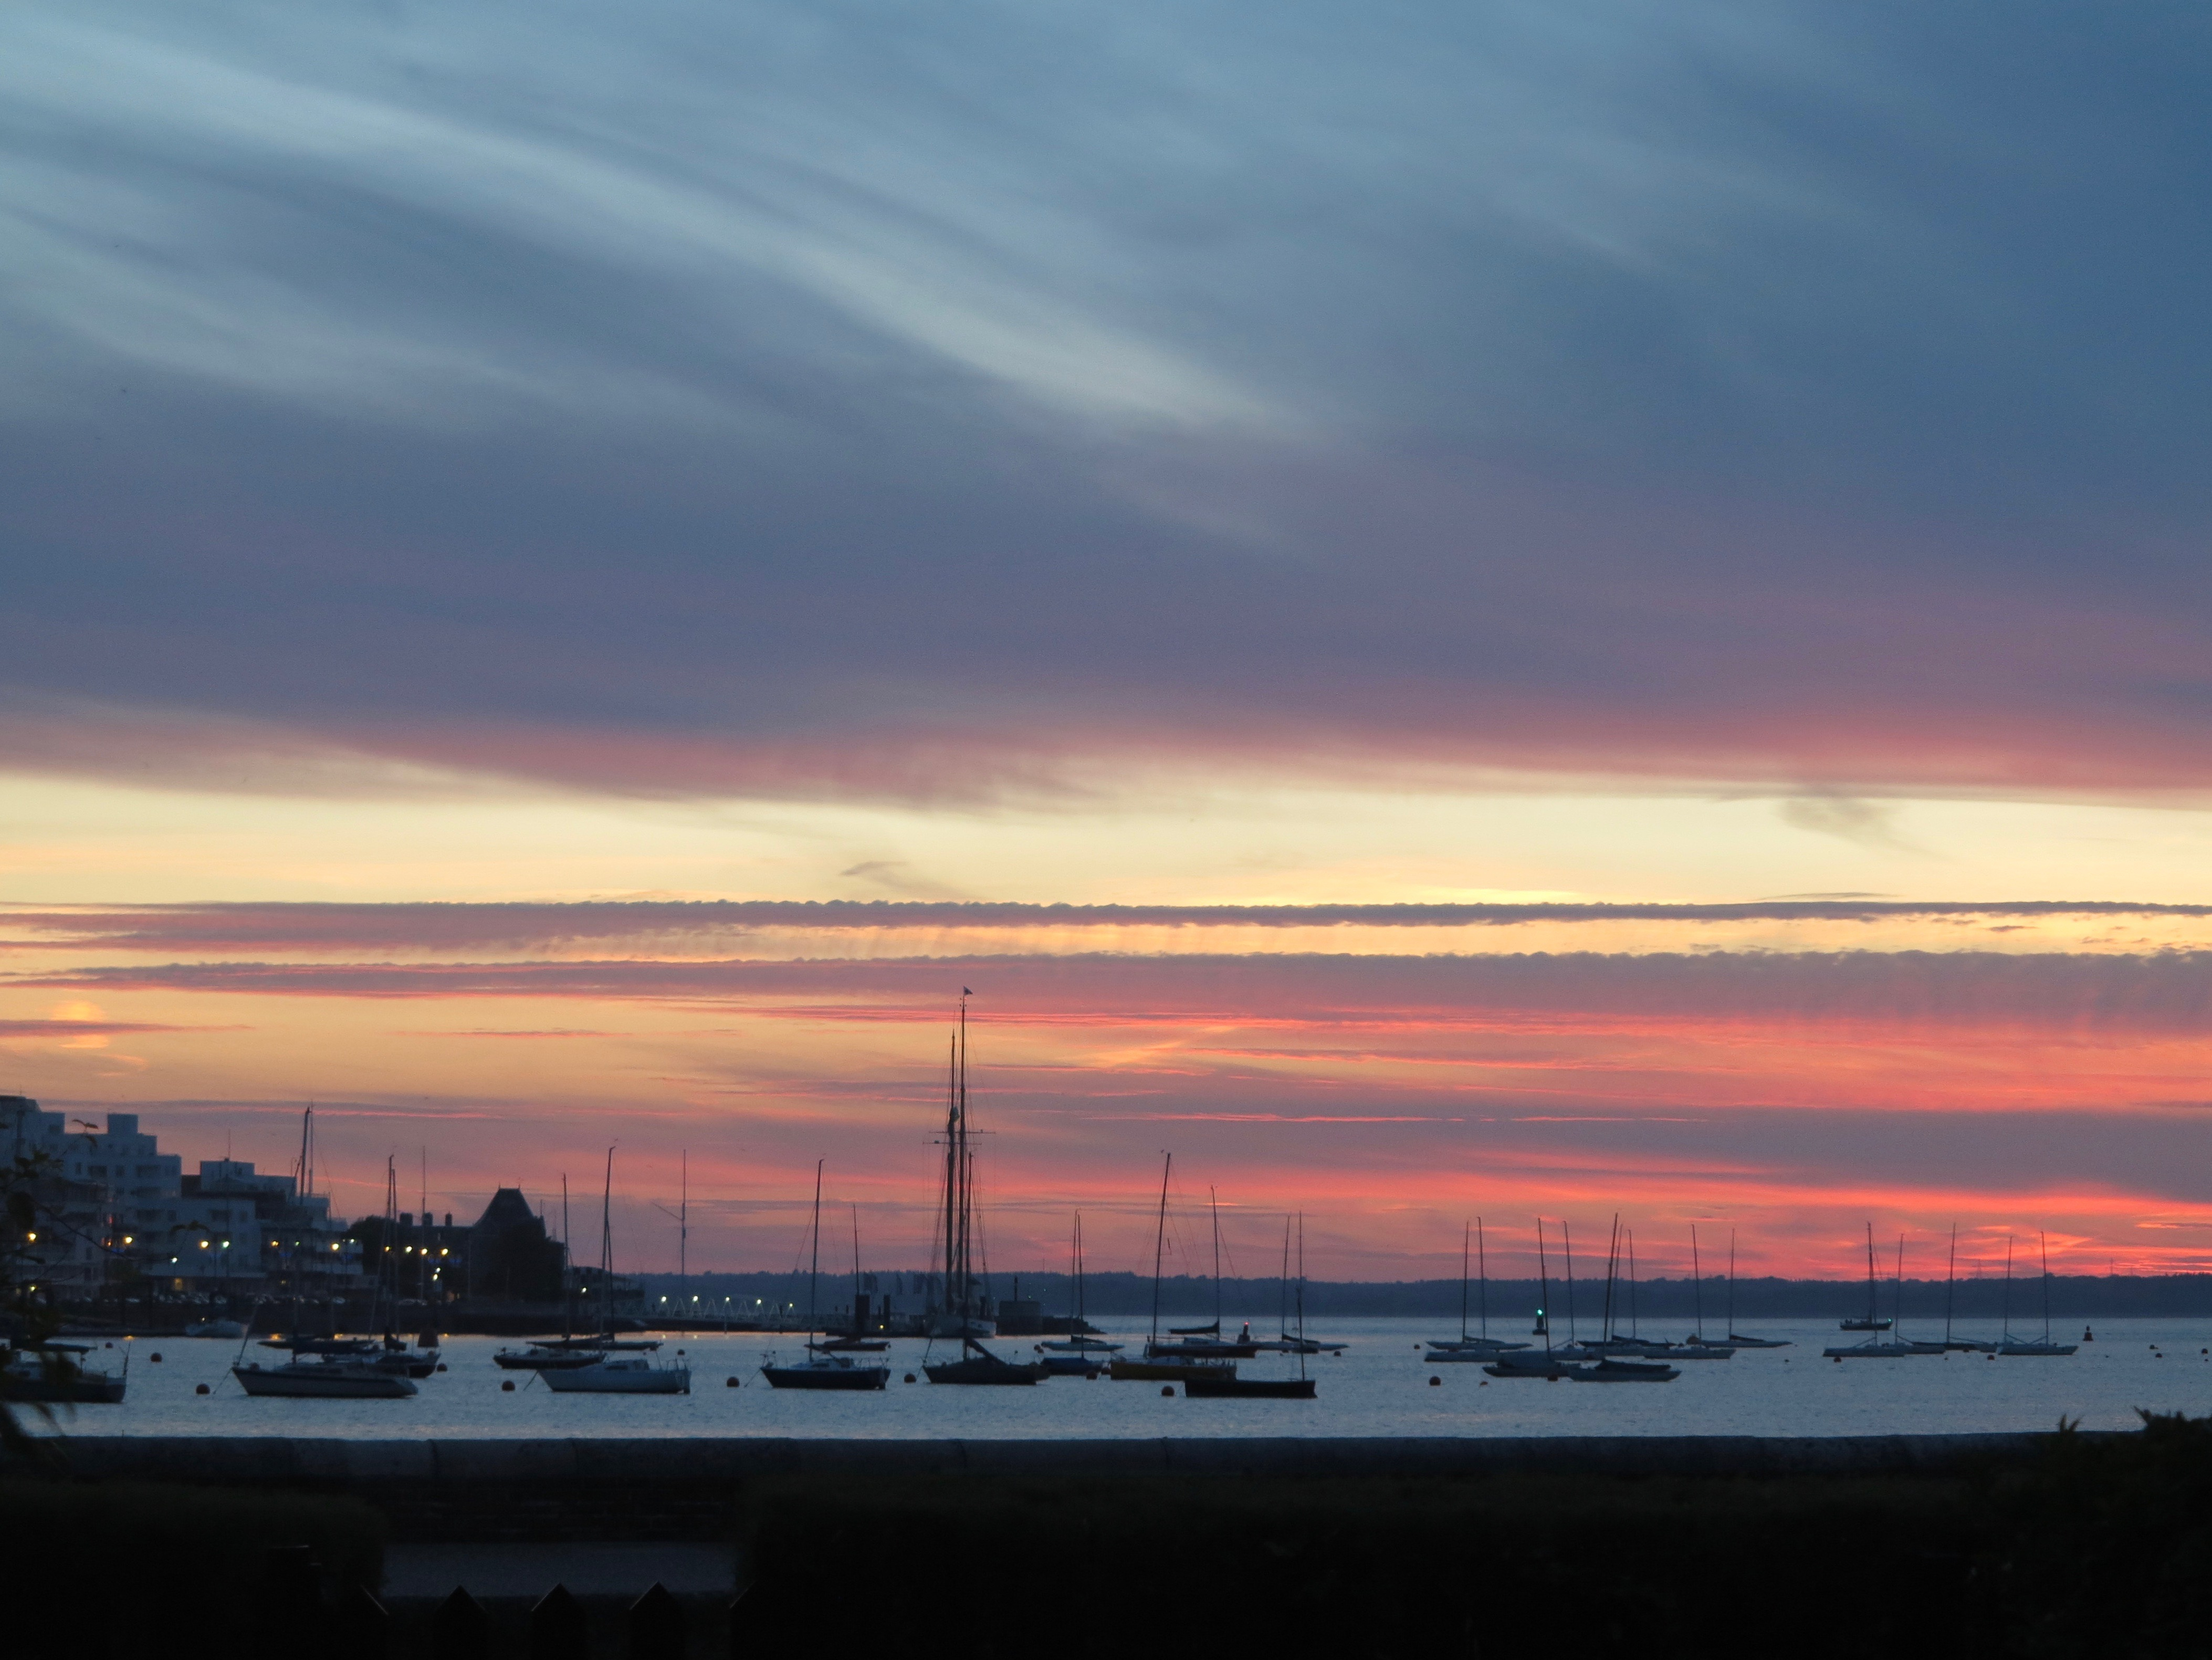 Sunset across Cowes harbour